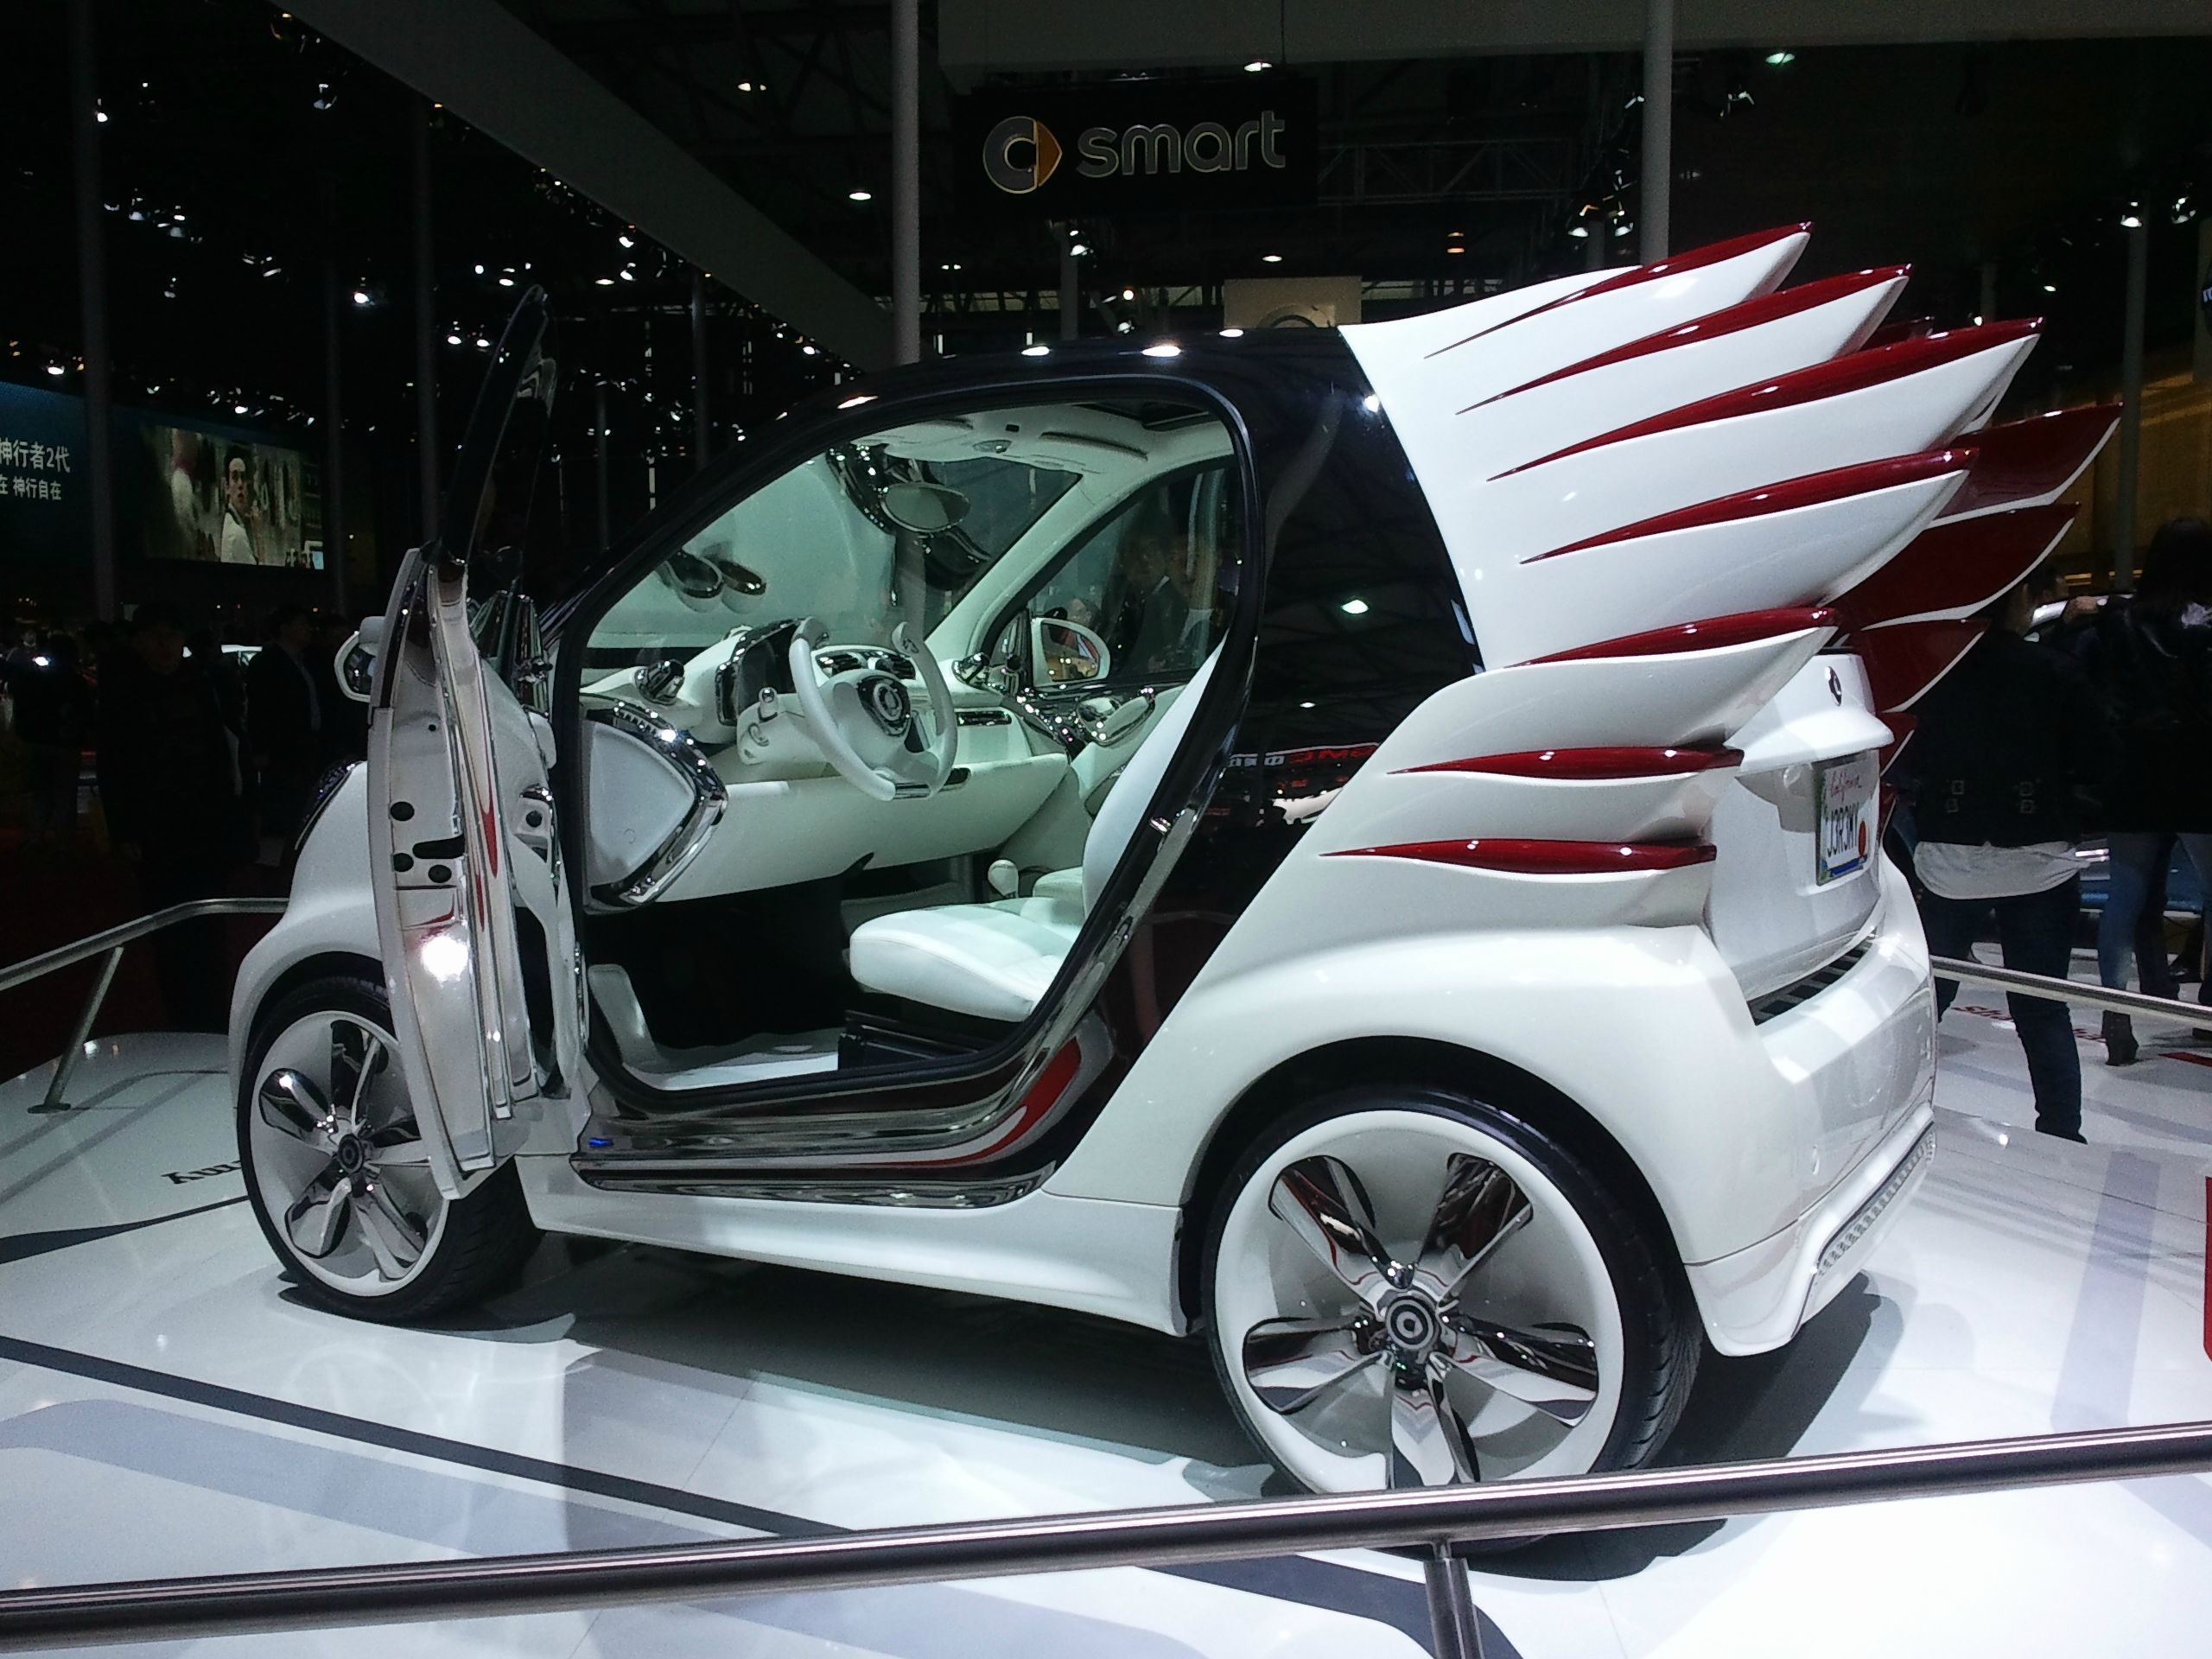 Smart car sticker designs - 17 Best Ideas About Smart Car On Pinterest Mercedes Smart Car Benz Smart And Mercedes Benz Parts